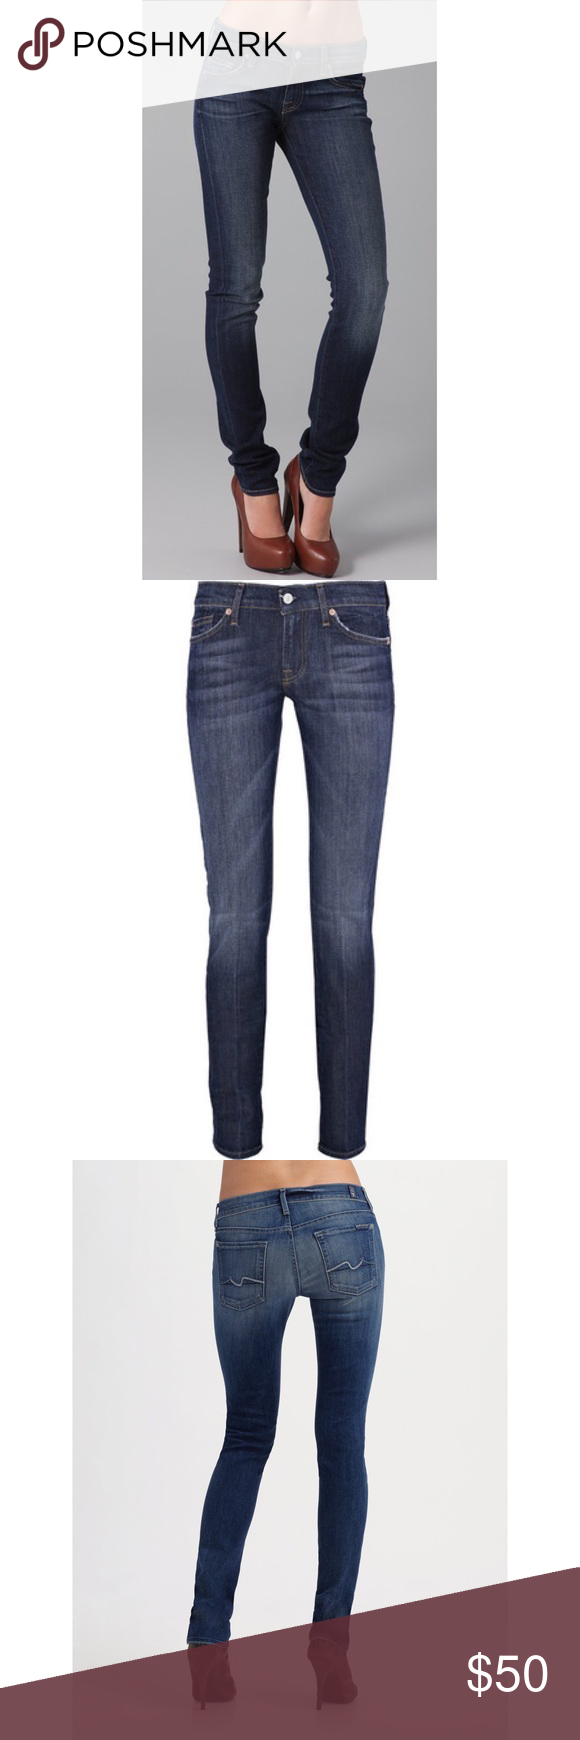 """Seven skinny jeans Roxanne fit size 27 These skinny jeans feature 5-pocket styling and a single-button closure. Stitching at back pockets and whiskering at front. Mild distressing. 12"""" leg opening.   * 7.5"""" rise. 34"""" inseam. * Fabrication: Stretch denim. * 98% cotton/2% spandex. * Wash cold. * Made in the USA. Seven7 Jeans Skinny"""